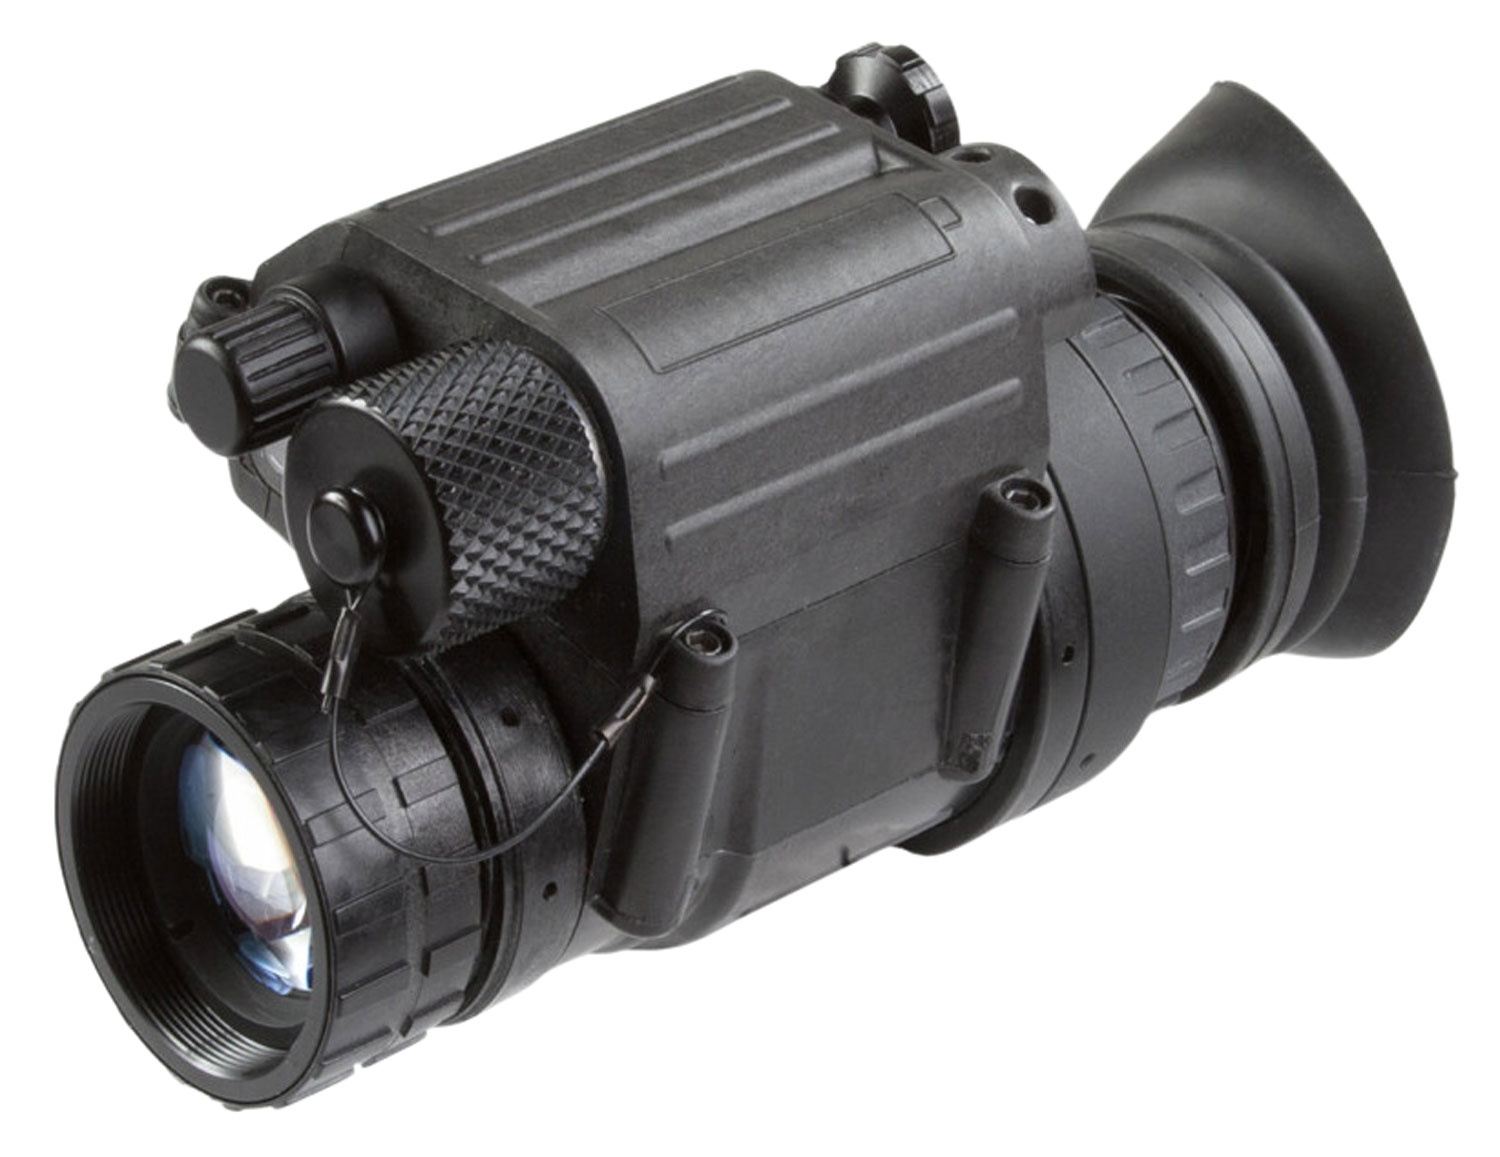 Agm Global Vision 11P14122453031 PVS-14 NL-3 Monocular 1x 26mm 40 Degrees FOV Black